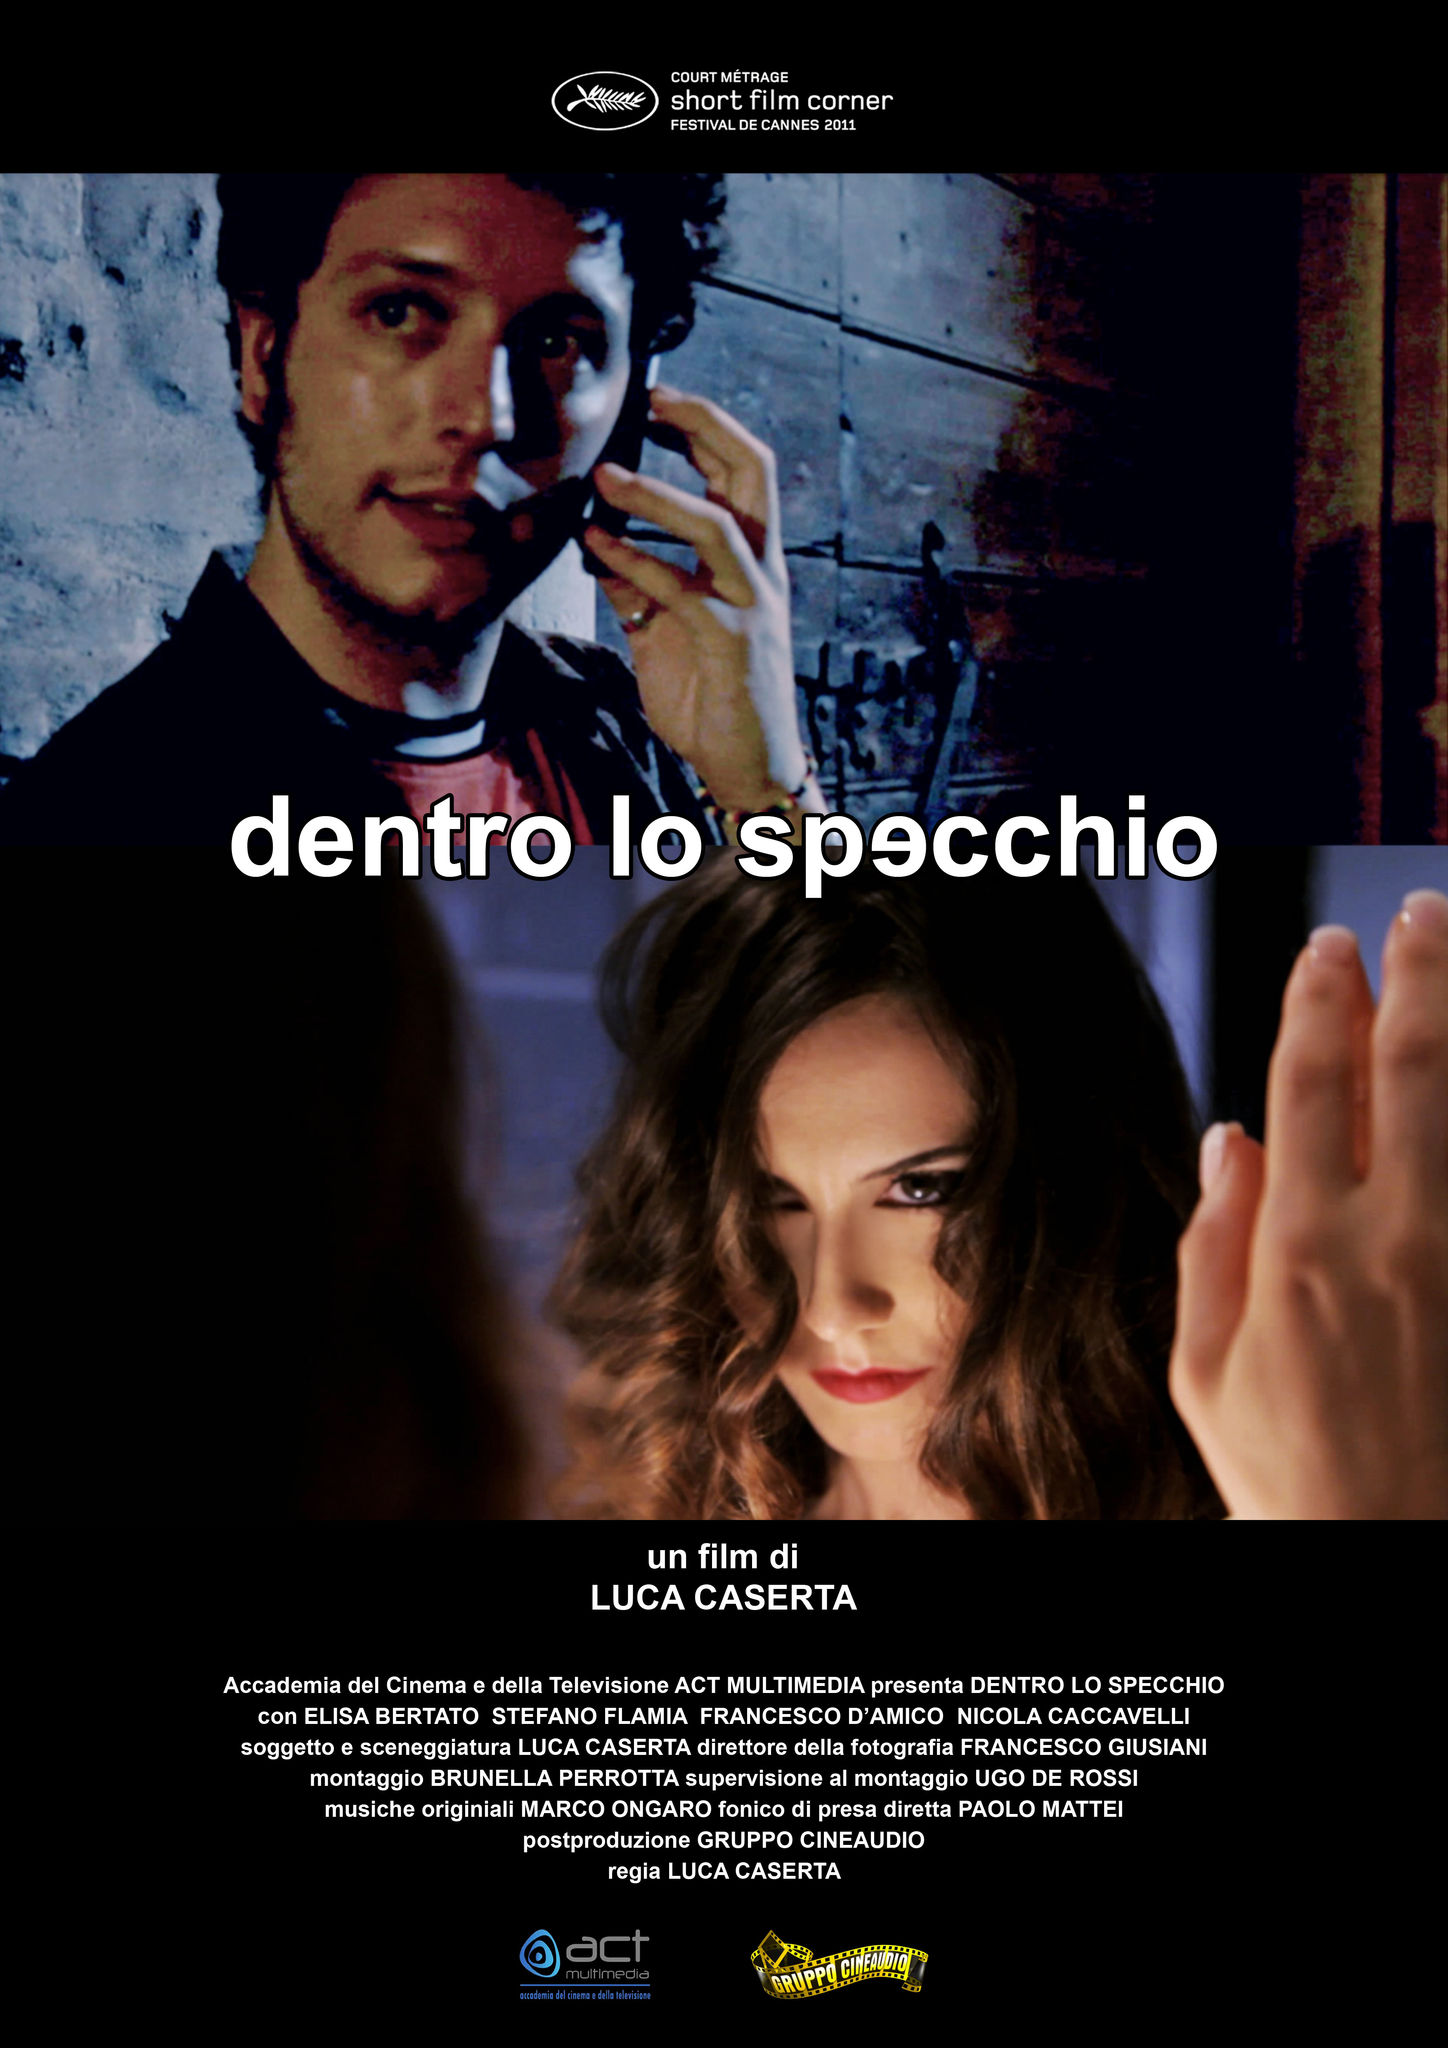 Dentro lo specchio (Inside the mirror)